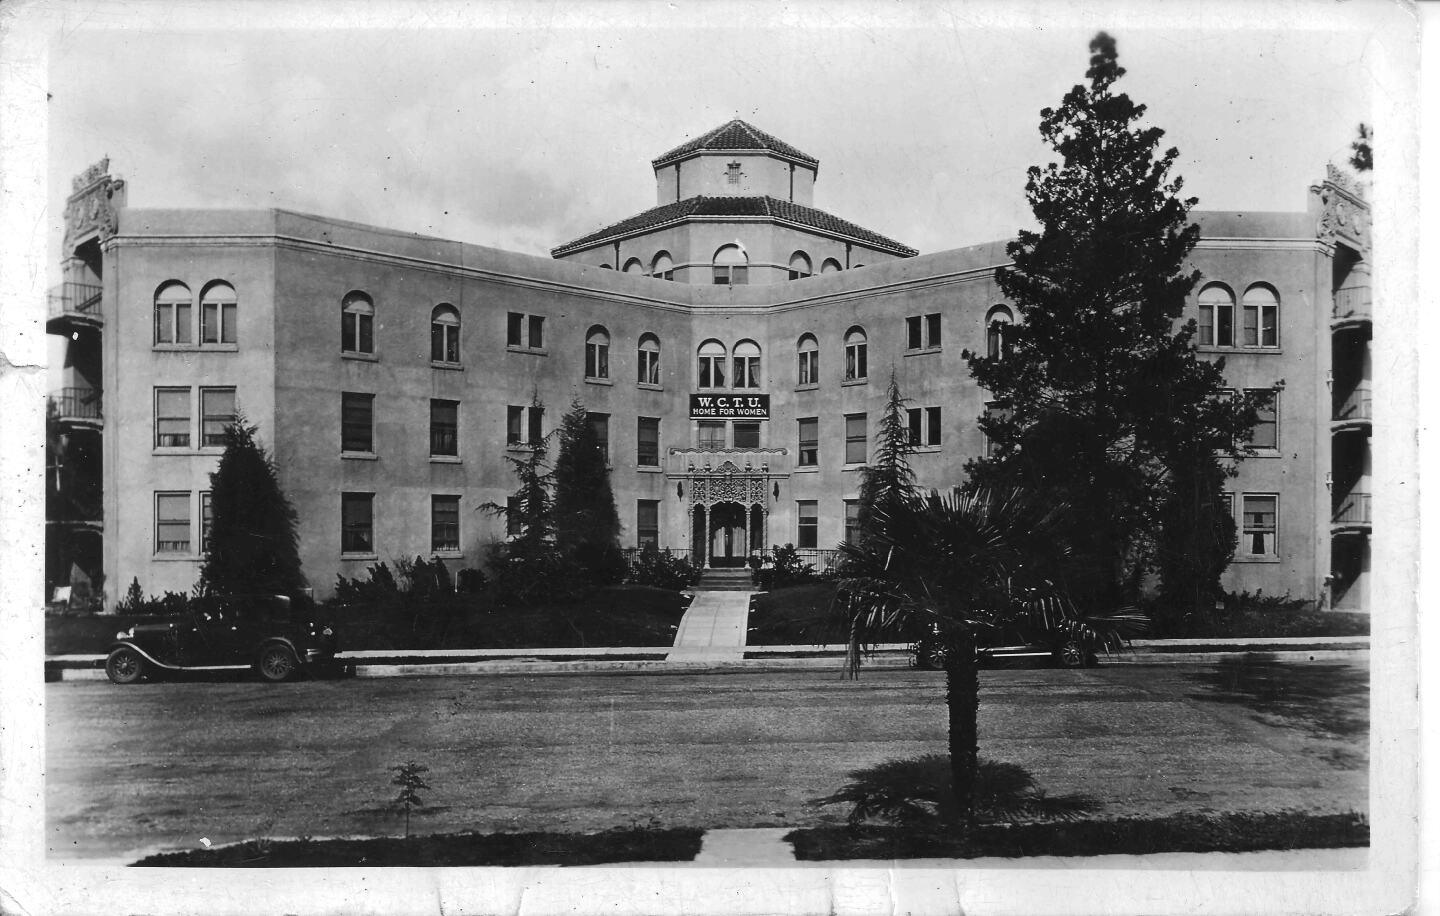 A black and white postcard photo of the Woman's Christian Temperance Union Home in Eagle Rock probably taken a few years after the home opened in 1928. The four-story main building is in the shape of a Maltese cross with Churrigueresque ornamentation over the main door, an the elevator in the center and four wings reaching out.